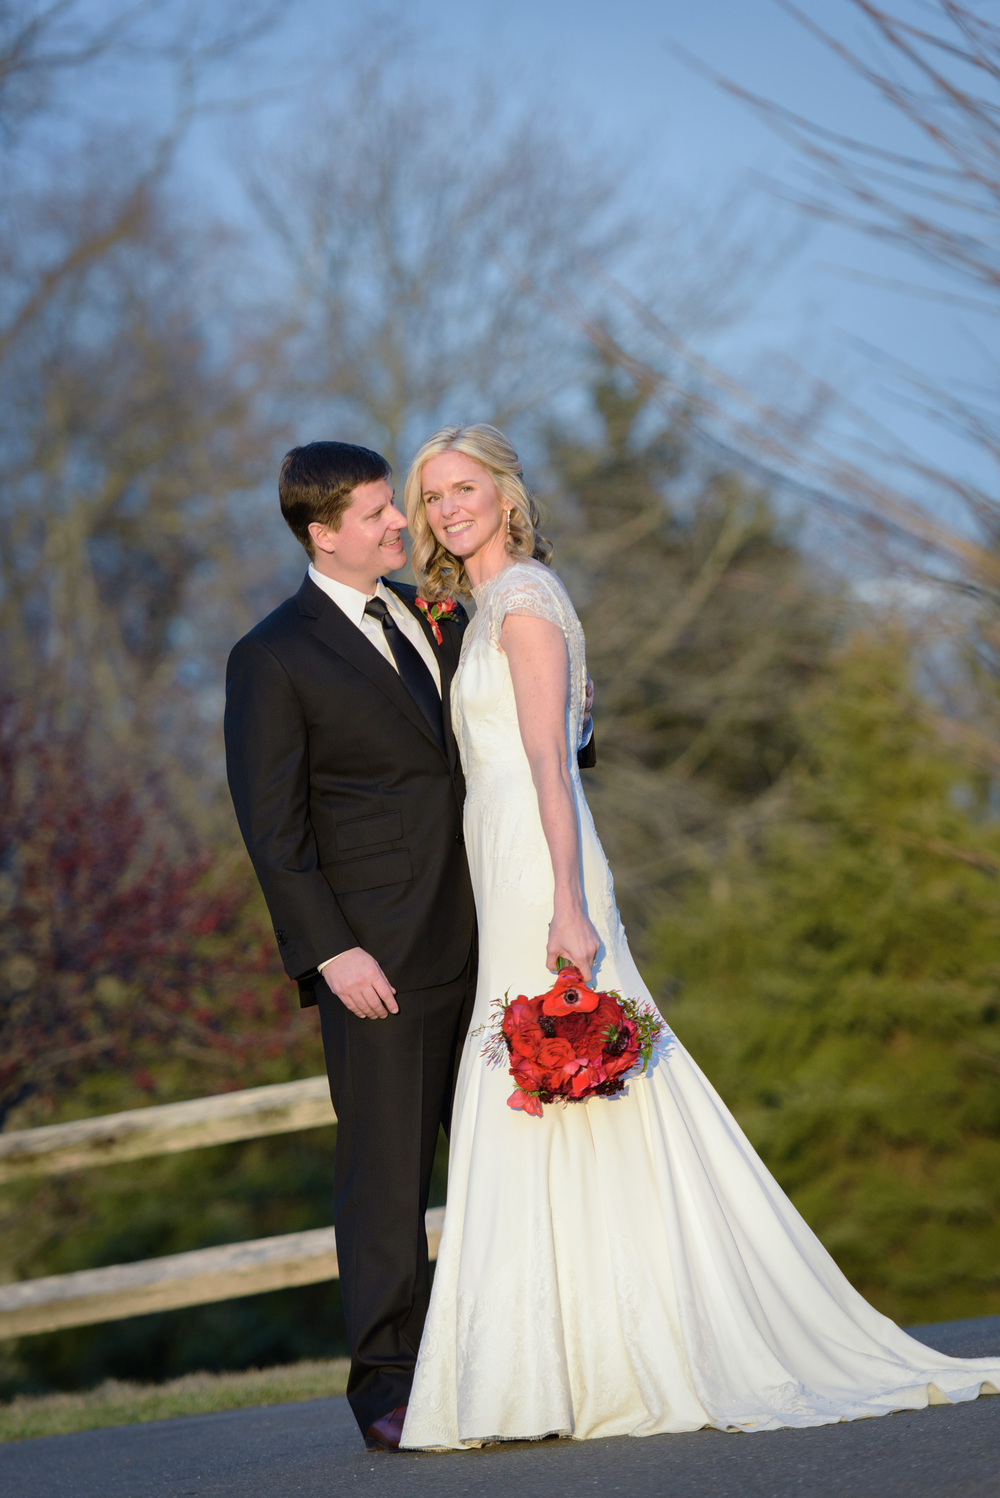 winter wedding laughter bride groom wilton countryclub sunset photographer ©ninapomeroy.com photography